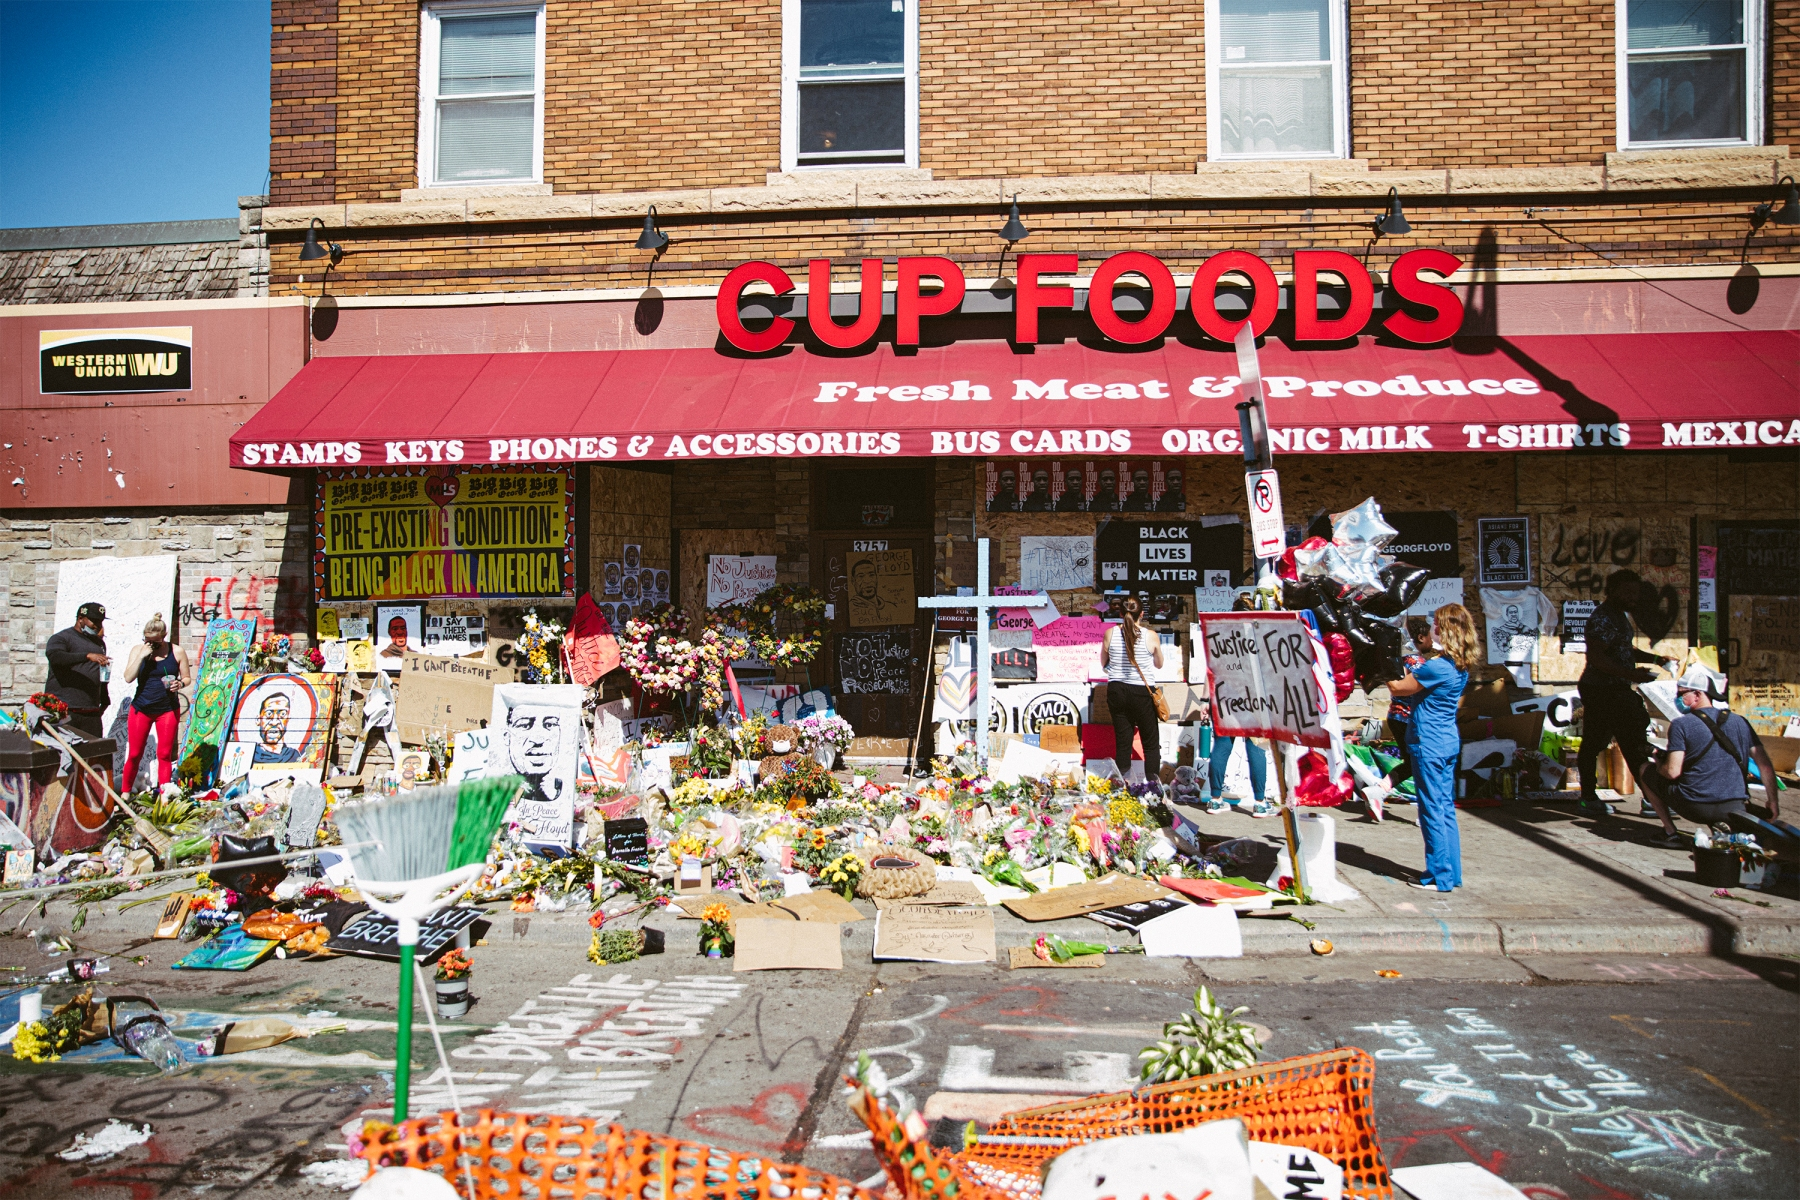 Art, flowers and protest signs outside Cup Foods in Minneapolis